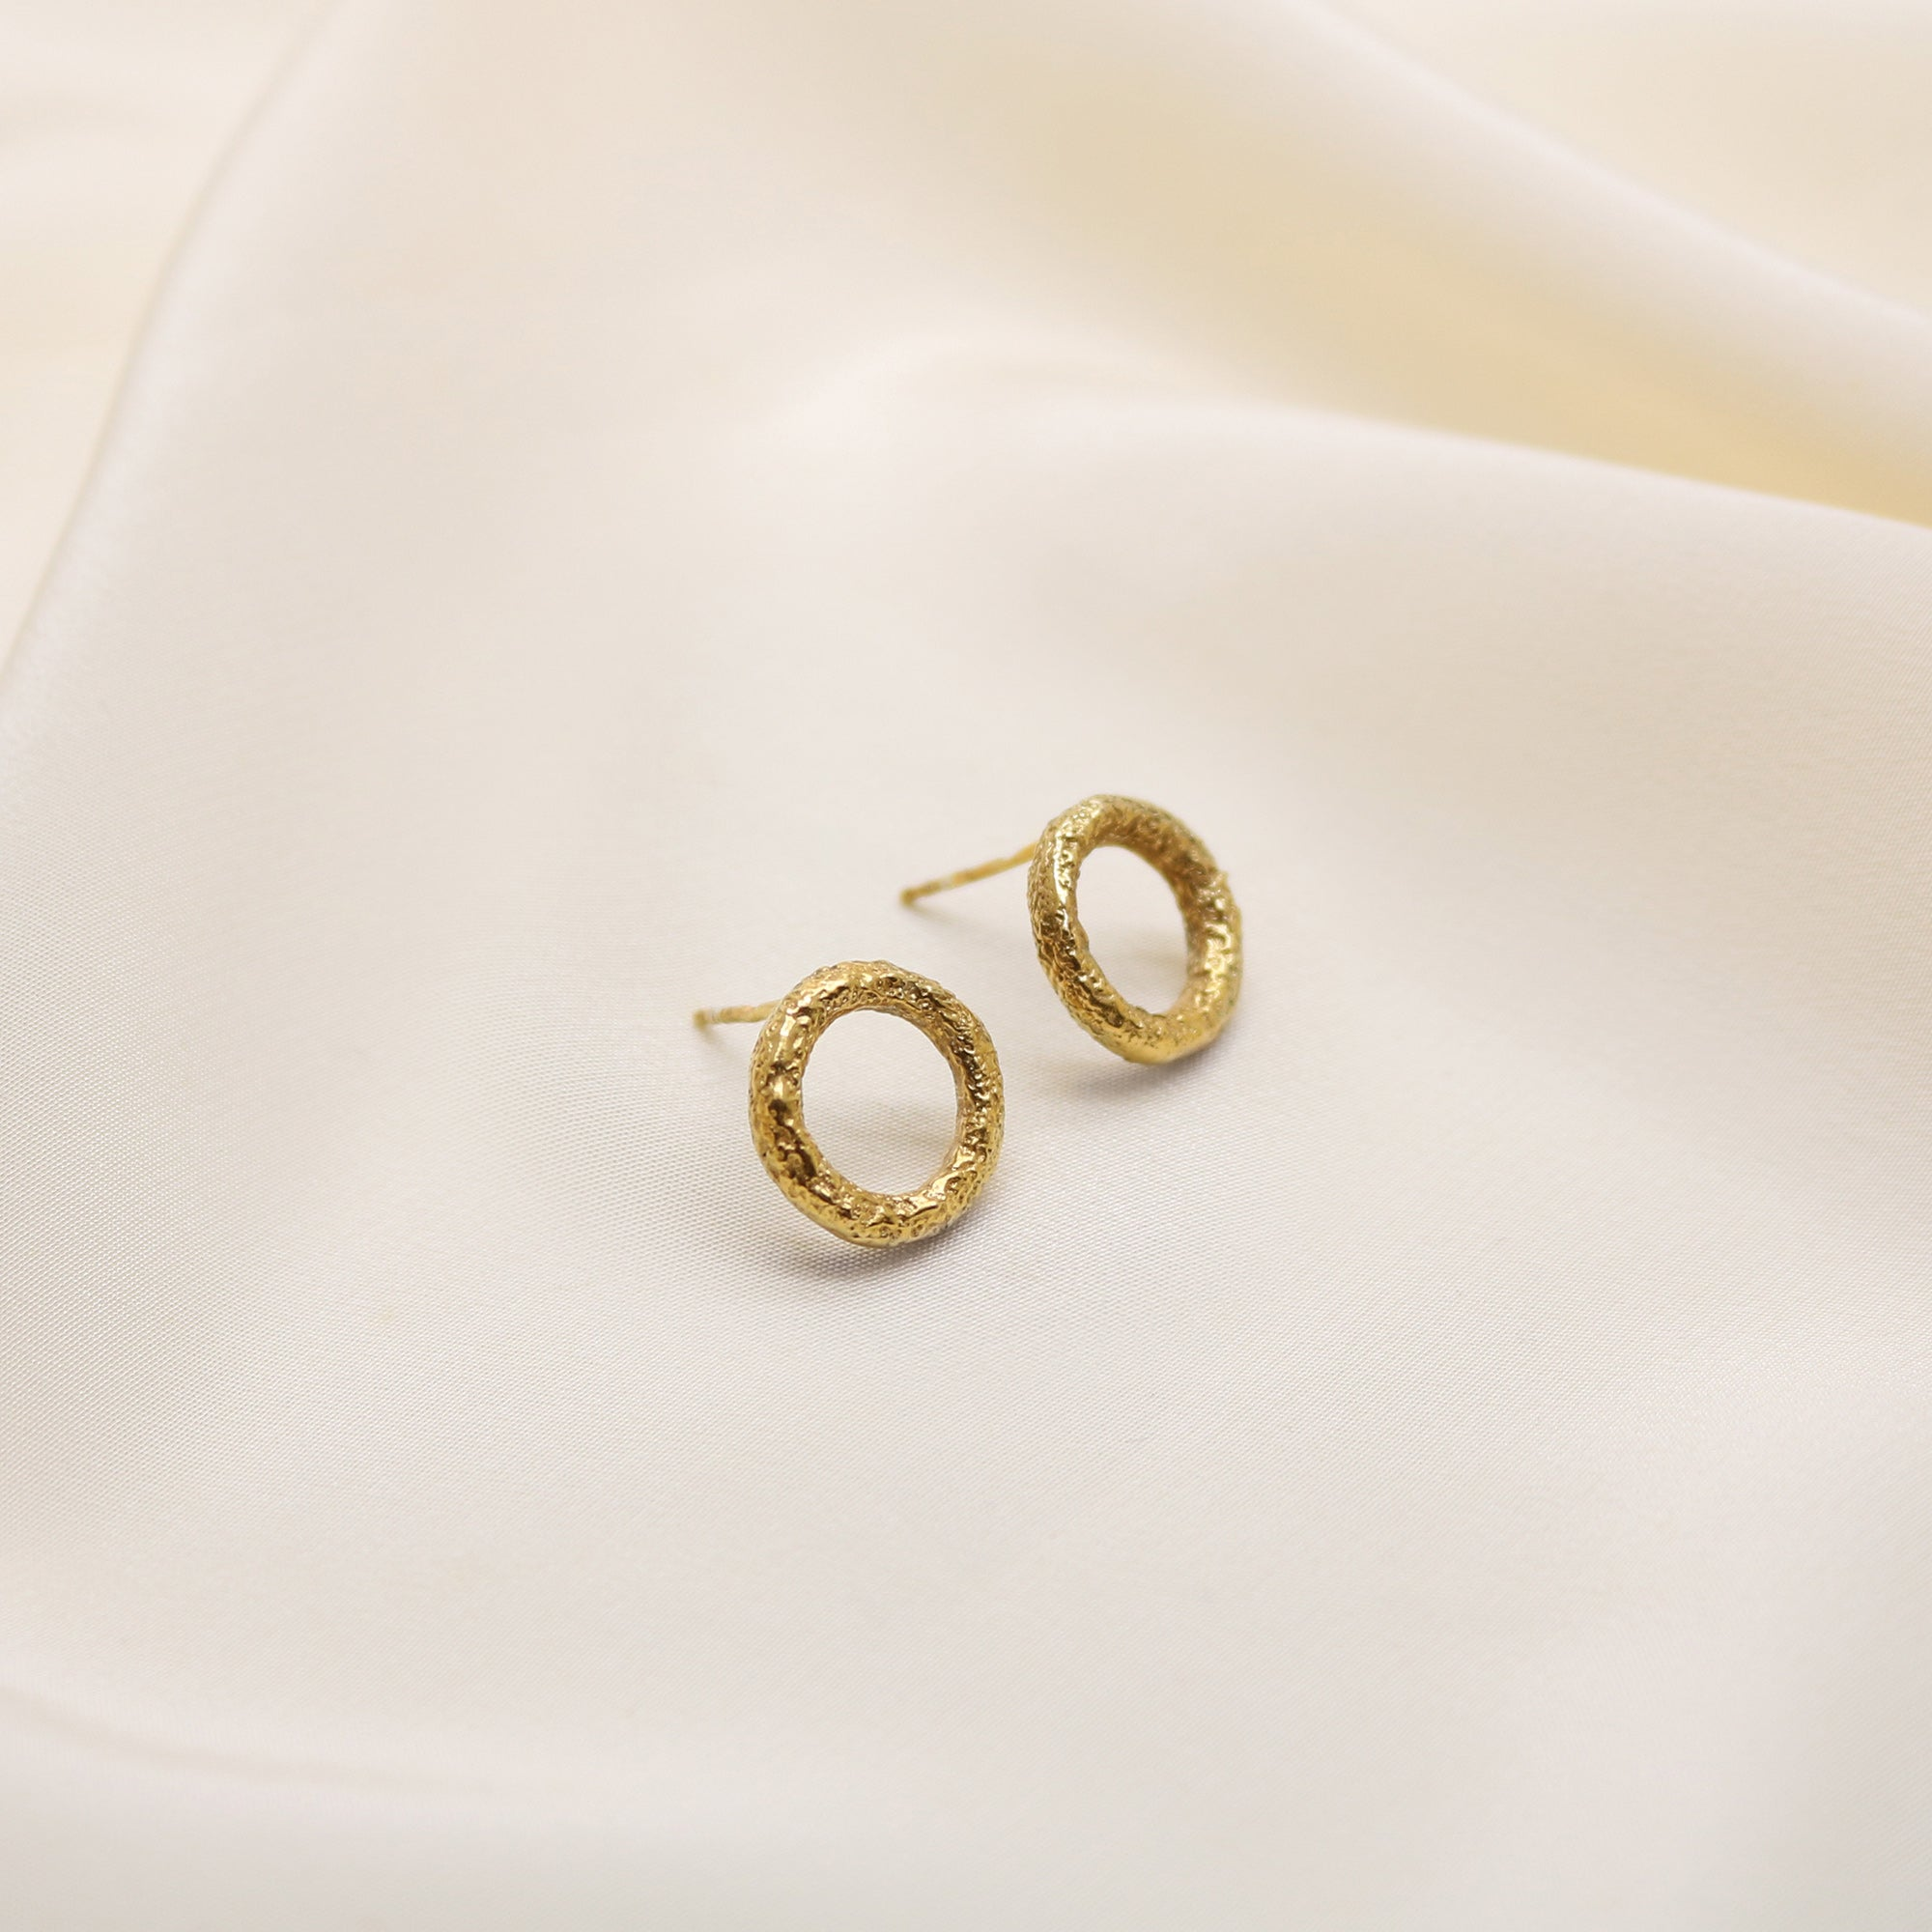 Wabi Mini Earrings – Paula Vieira Jewellery